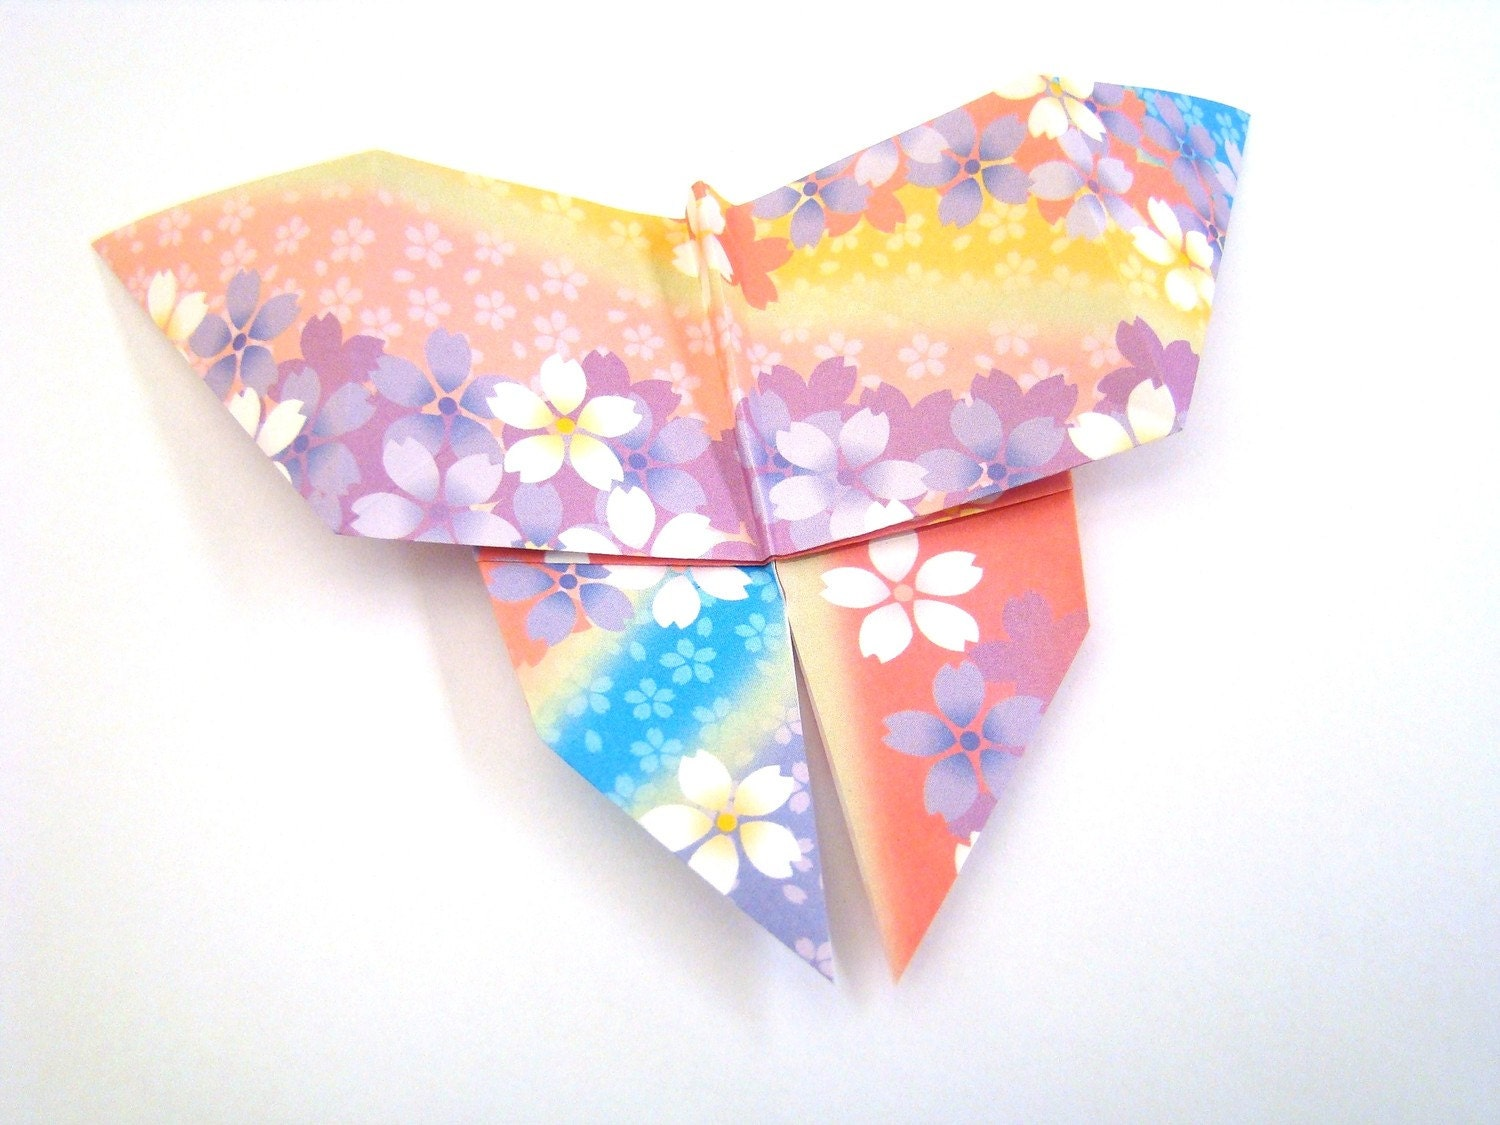 Origami Butterflies - Patterned Butterflies - Set of 5